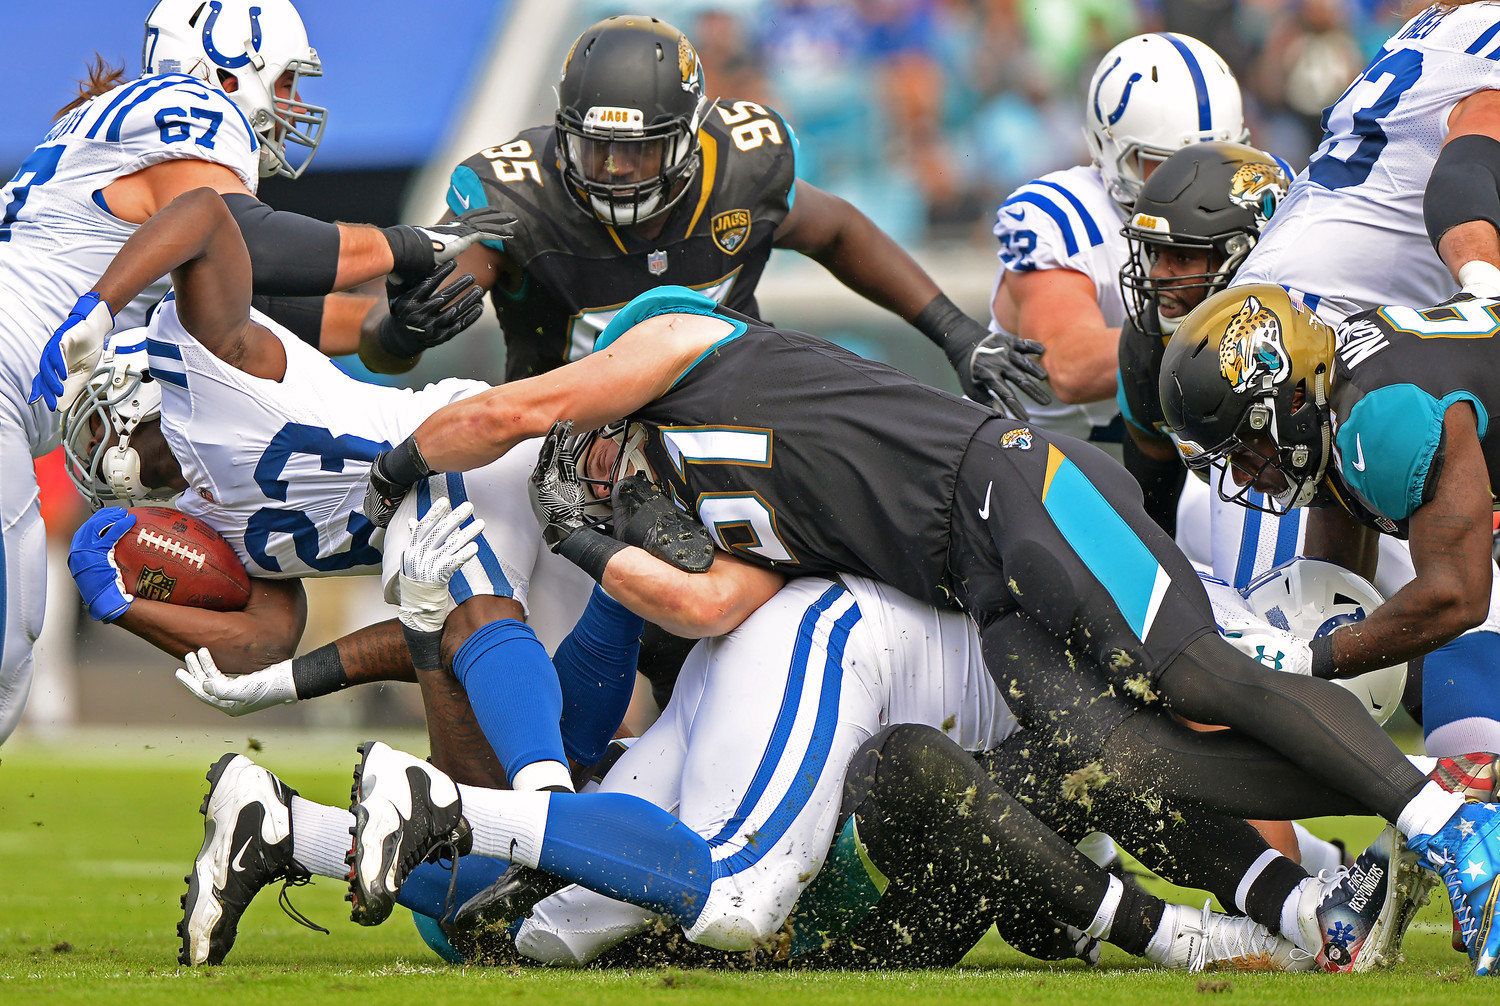 Jaguars Linebacker Paul Posluszny wraps up Colts running back Frank Gore in Jacksonville's 30-10 rout of Indianapolis.